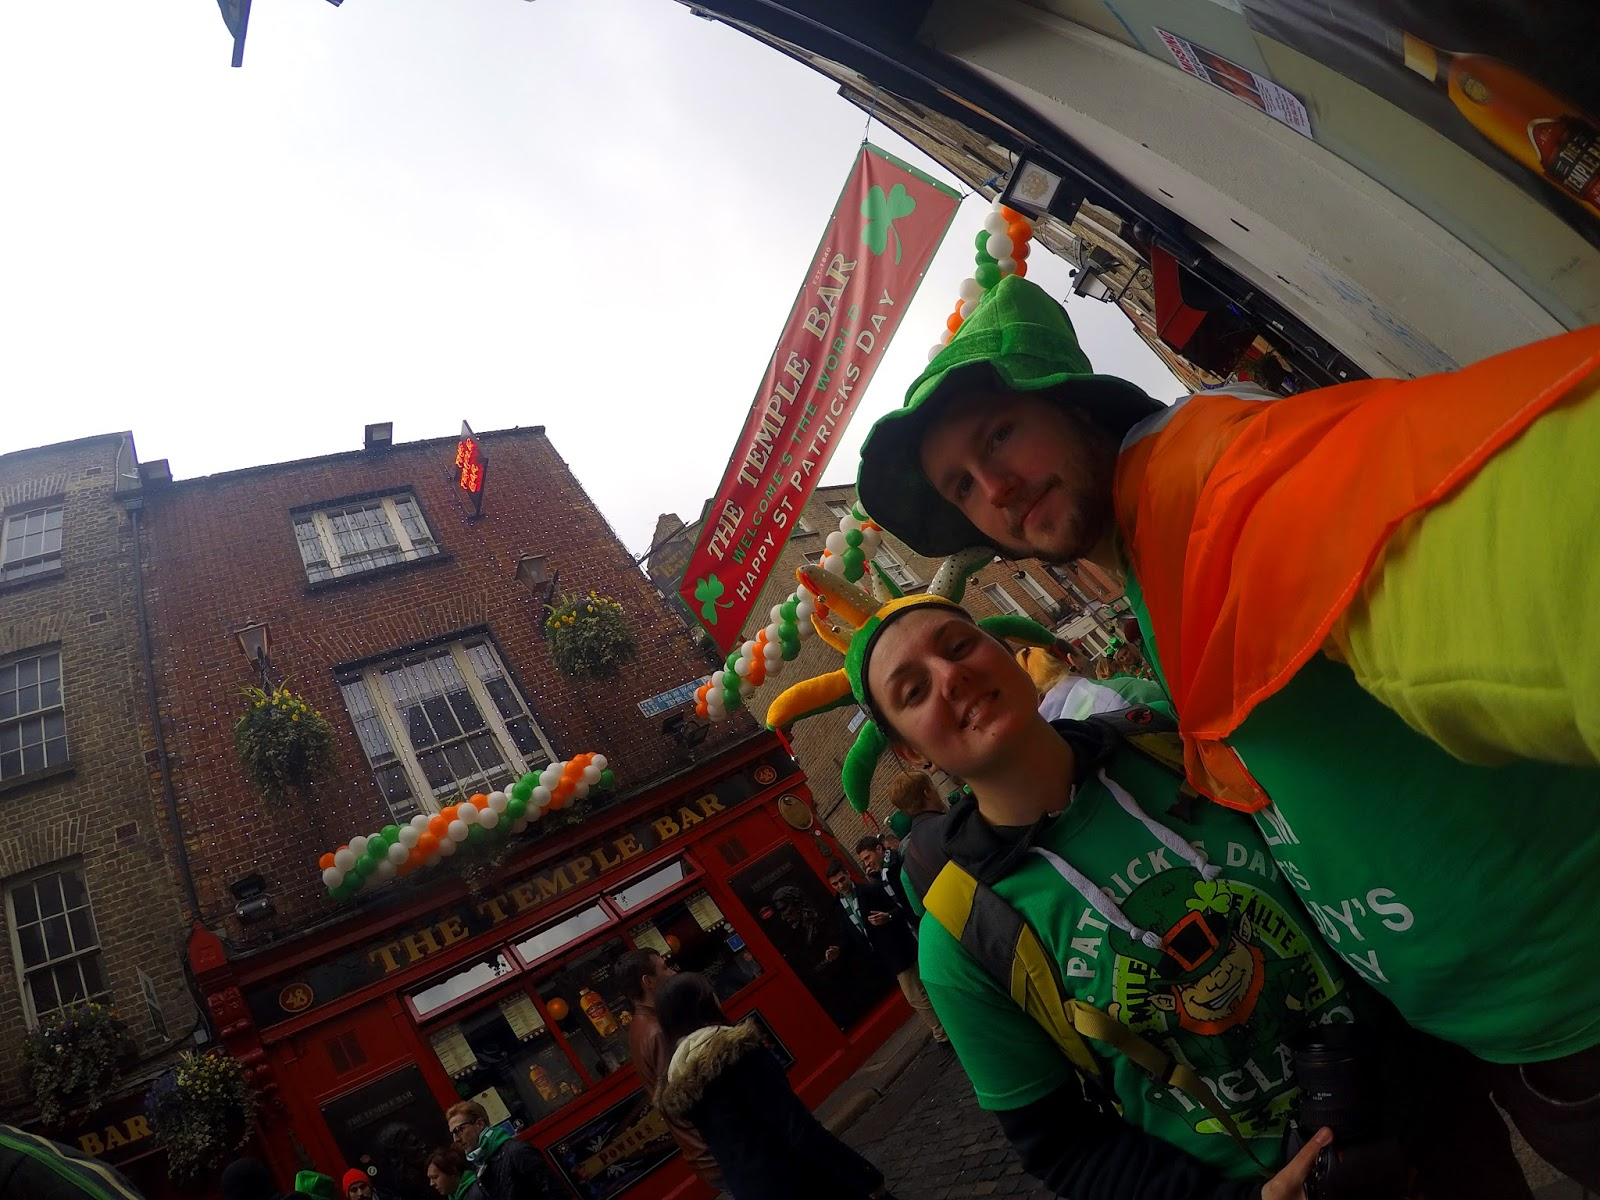 https://www.theroamingrenegades.com/2015/04/experiencing-crazy-dublin-on-st.html